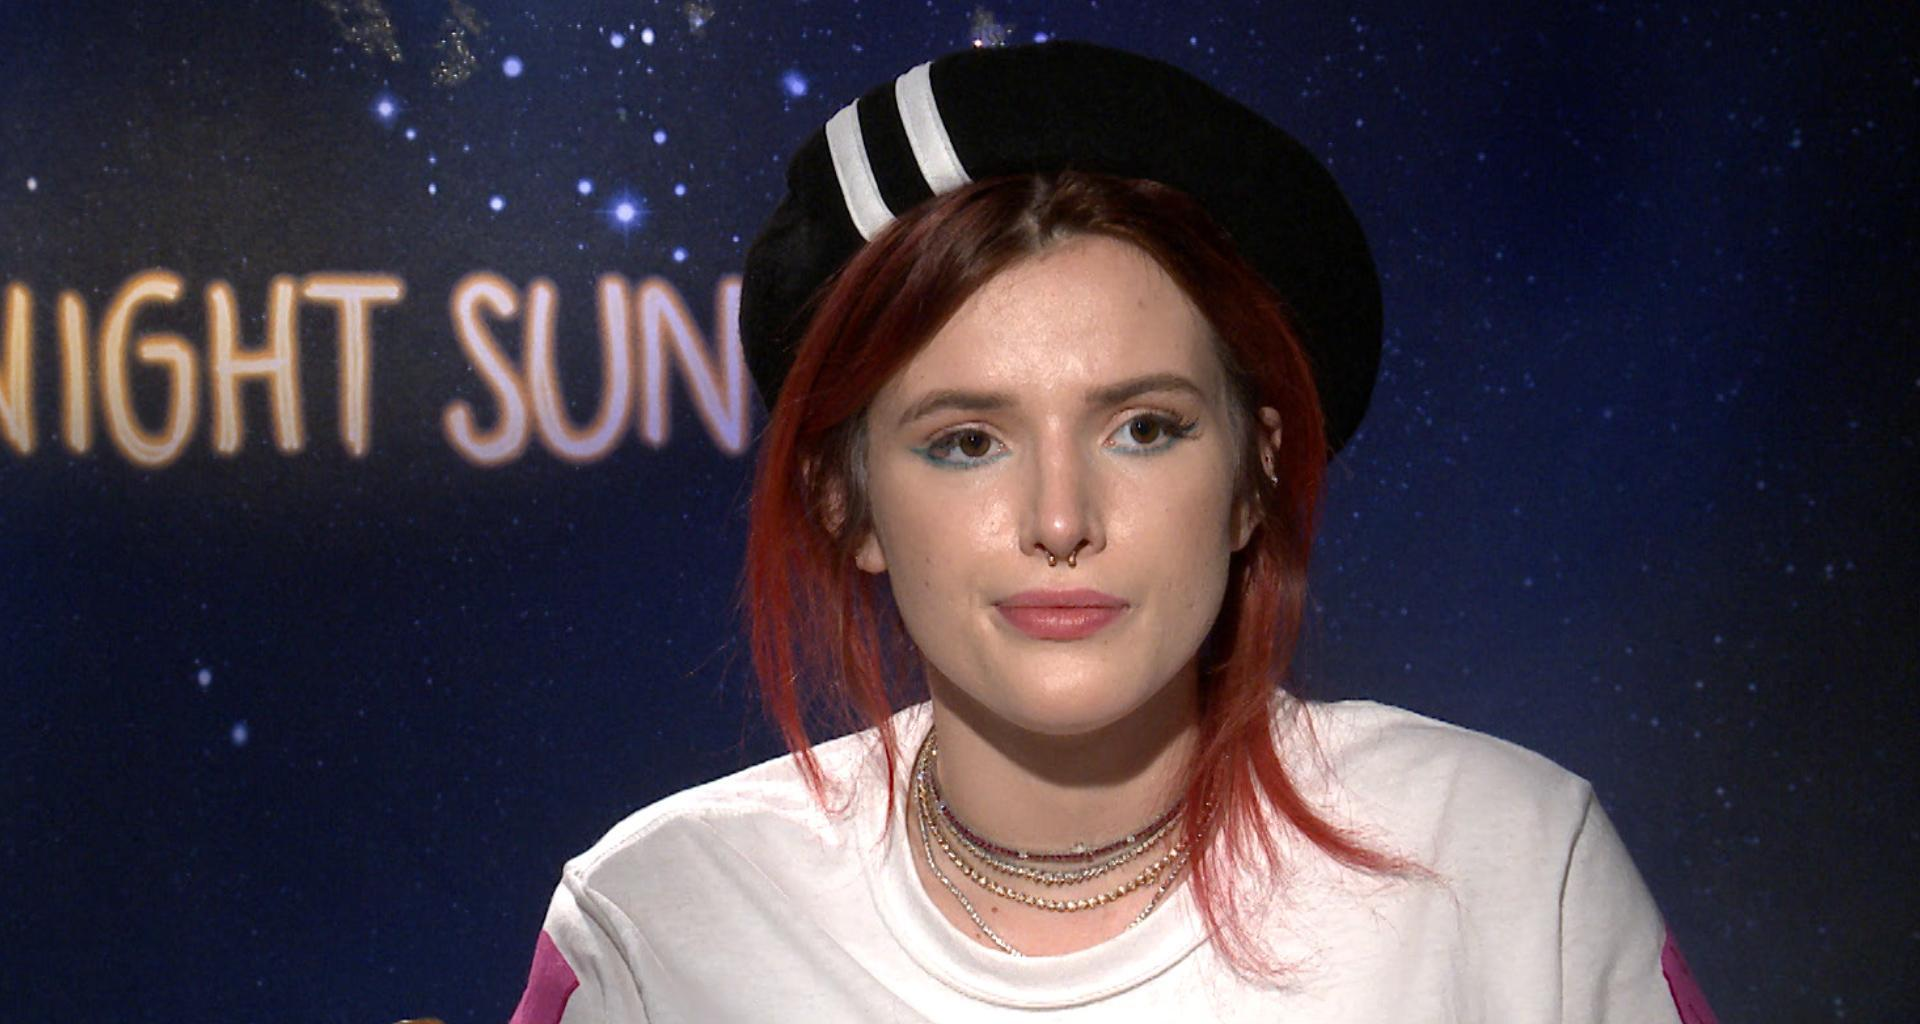 Bella Thorne Takes Trip To Italy To Spend Time With Her New Boo After Tana Mongeau And Mod Sun Drama!